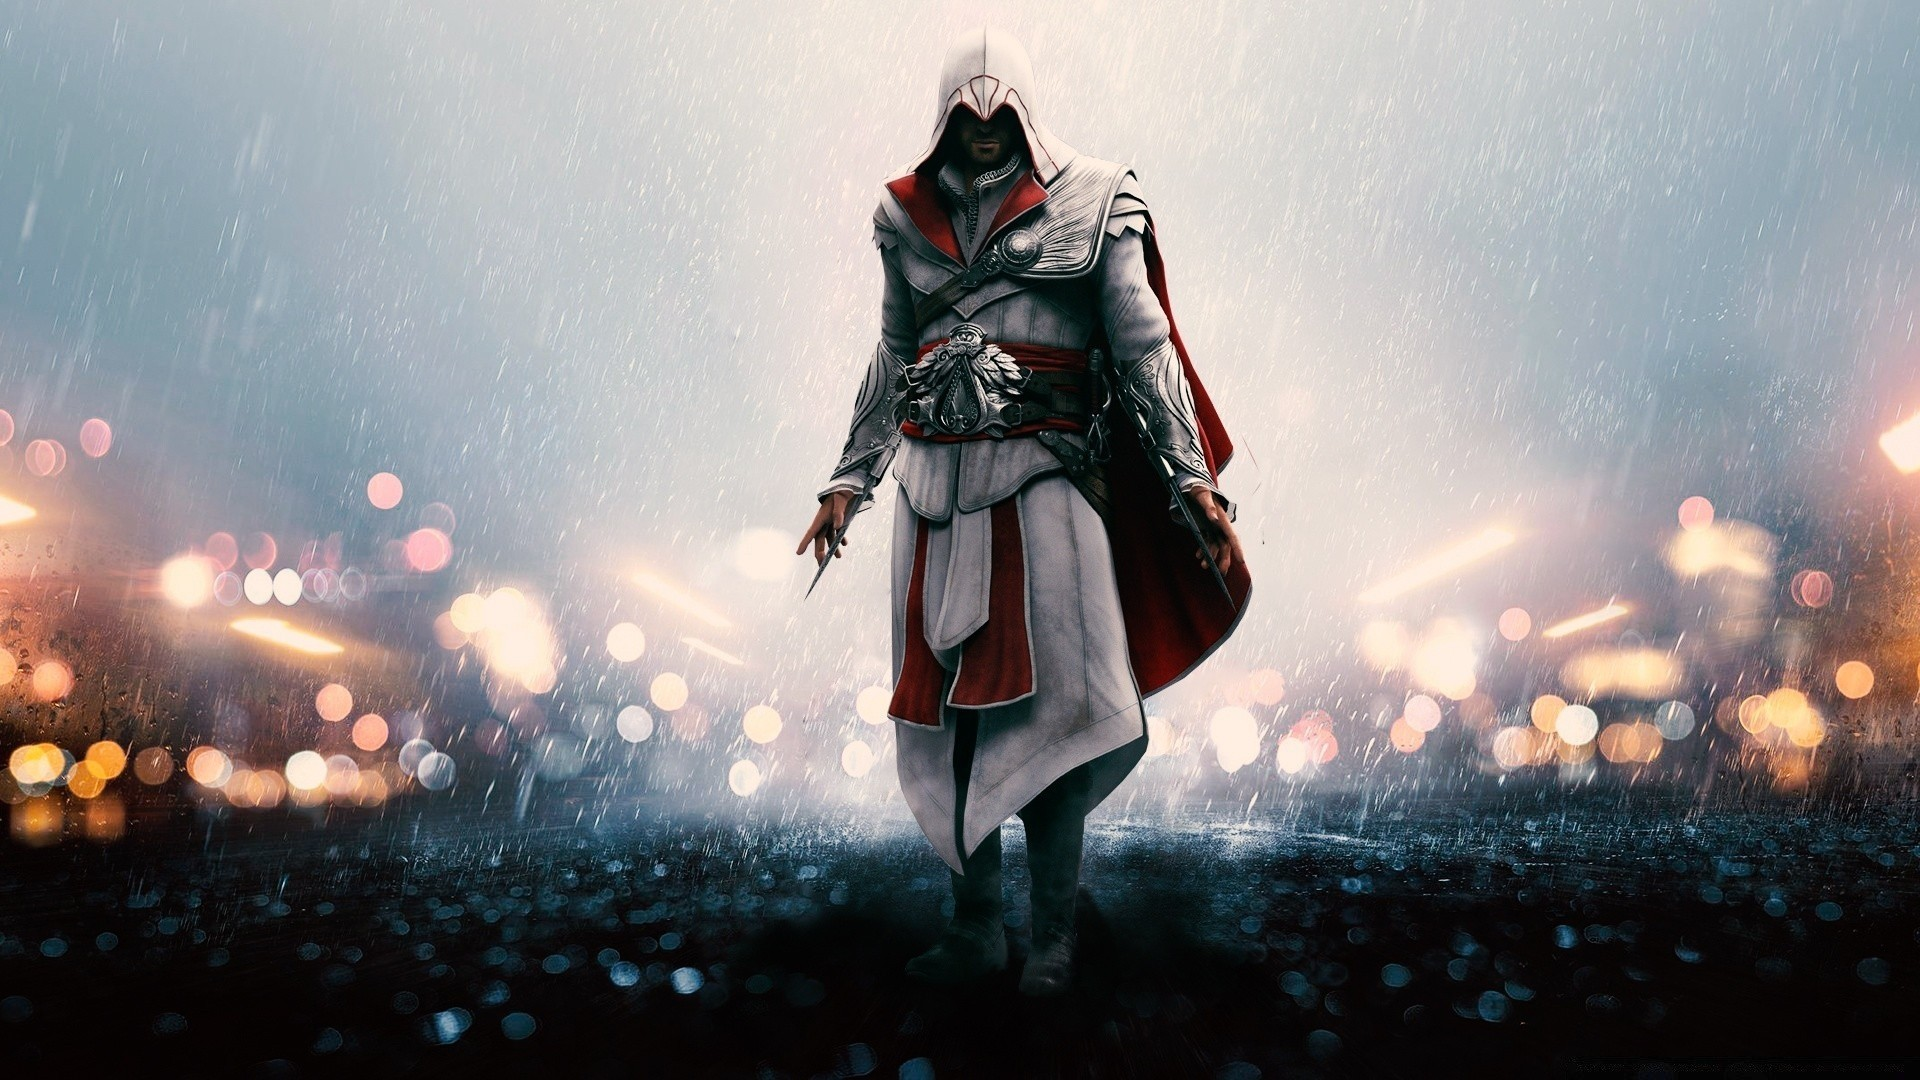 Assassin Wallpaper Free Download